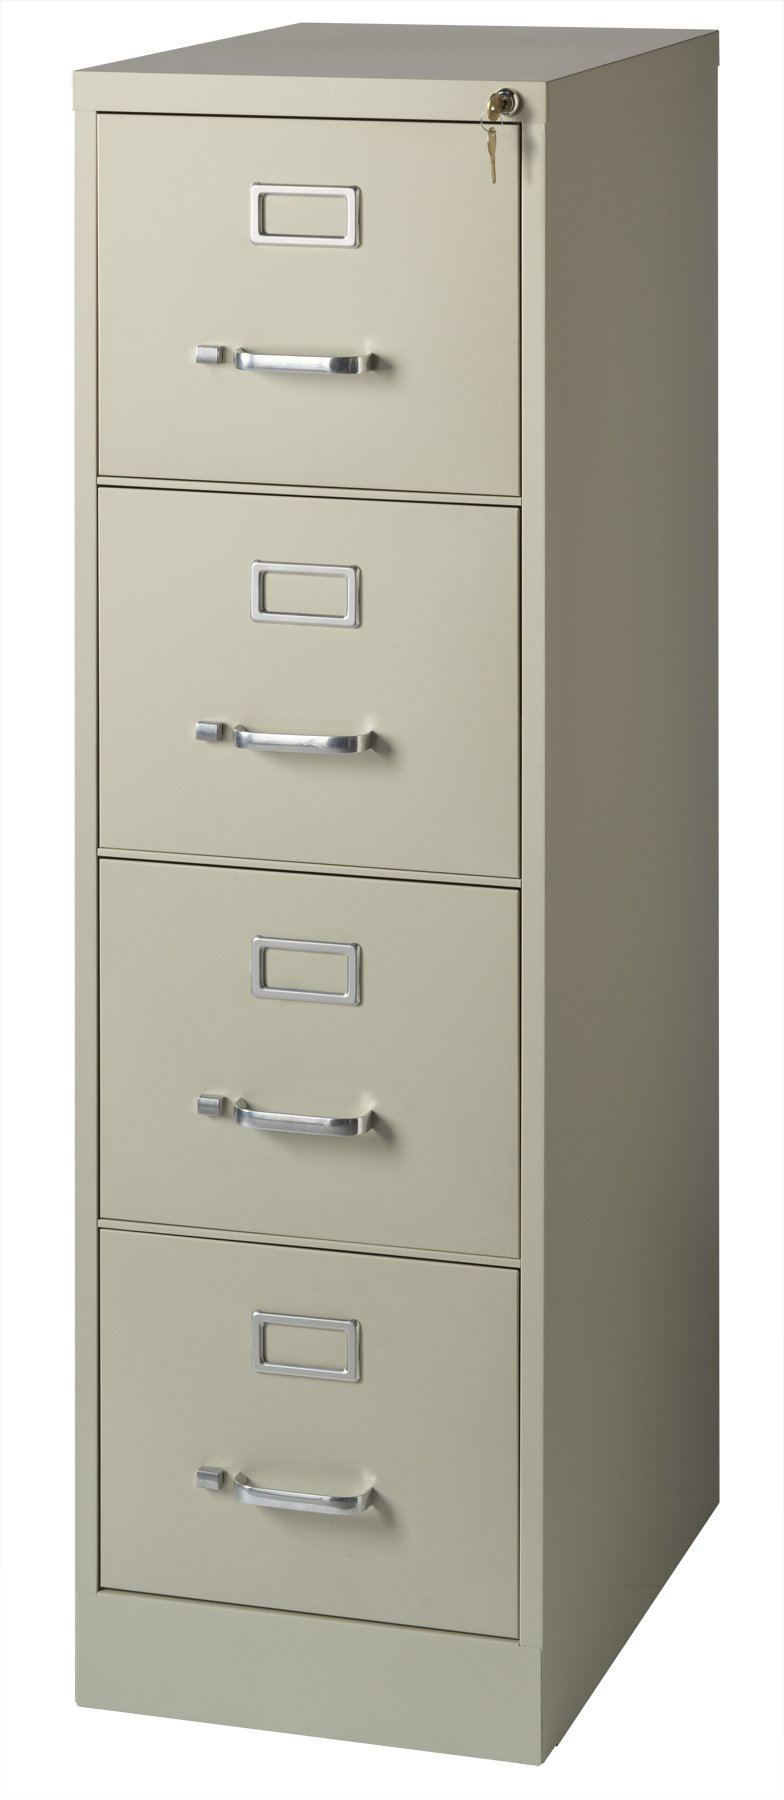 Office Dimensions Commercial 4 Drawer Letter Width Vertical File Cabinet, 22'' Deep - Putty